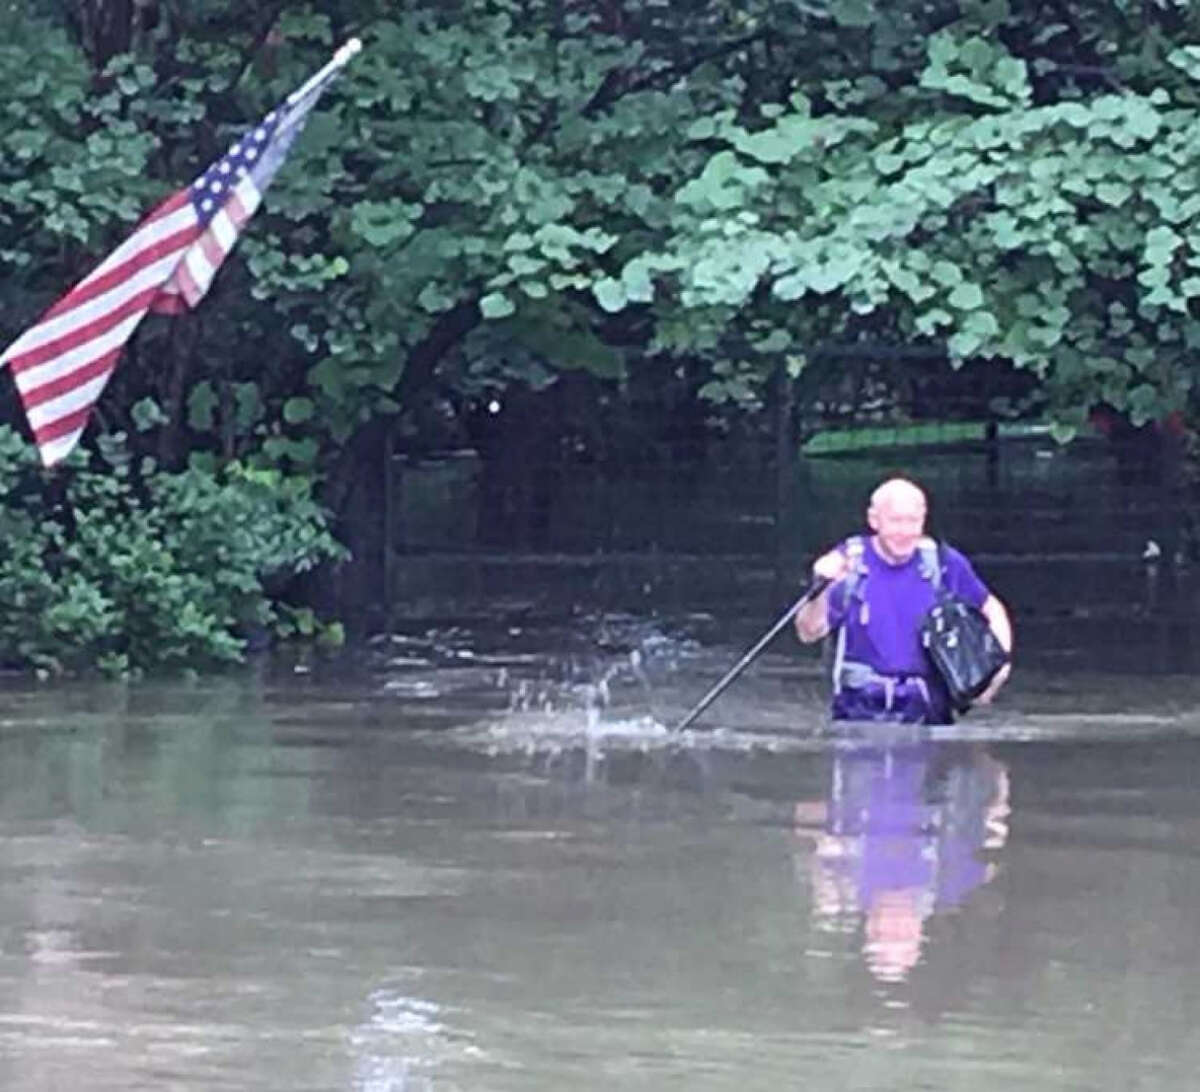 Former Houston mayor Bill White escapes his home moments after it floods on Sunday. MUST CREDIT: Courtesy of Bill White